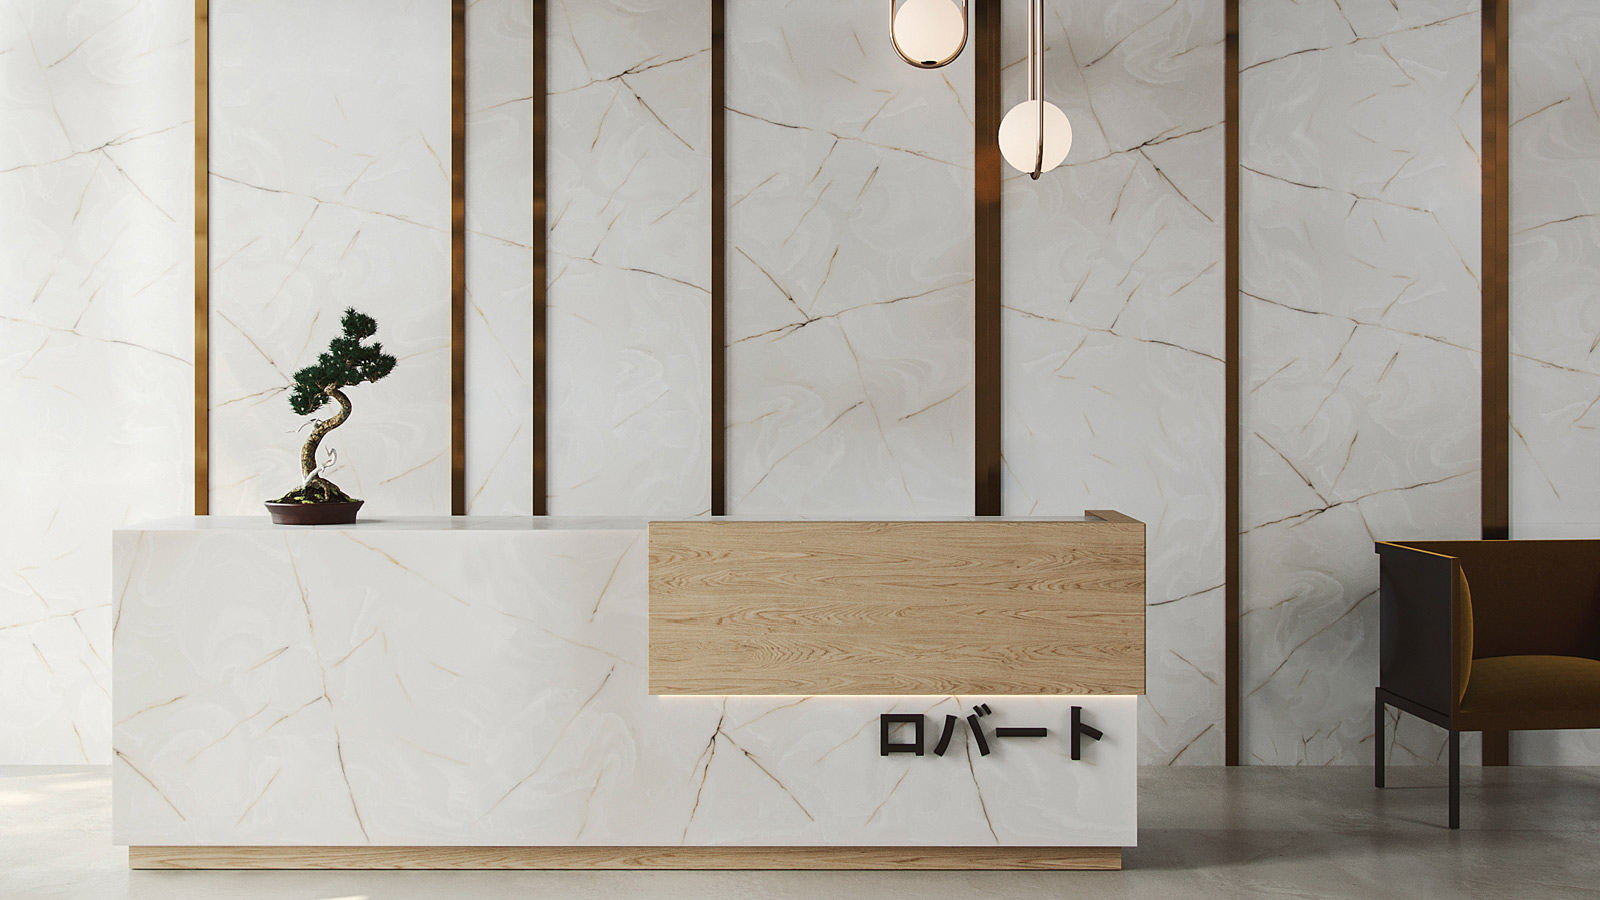 Coverlux™: the new material from Krion inspired by natural stone